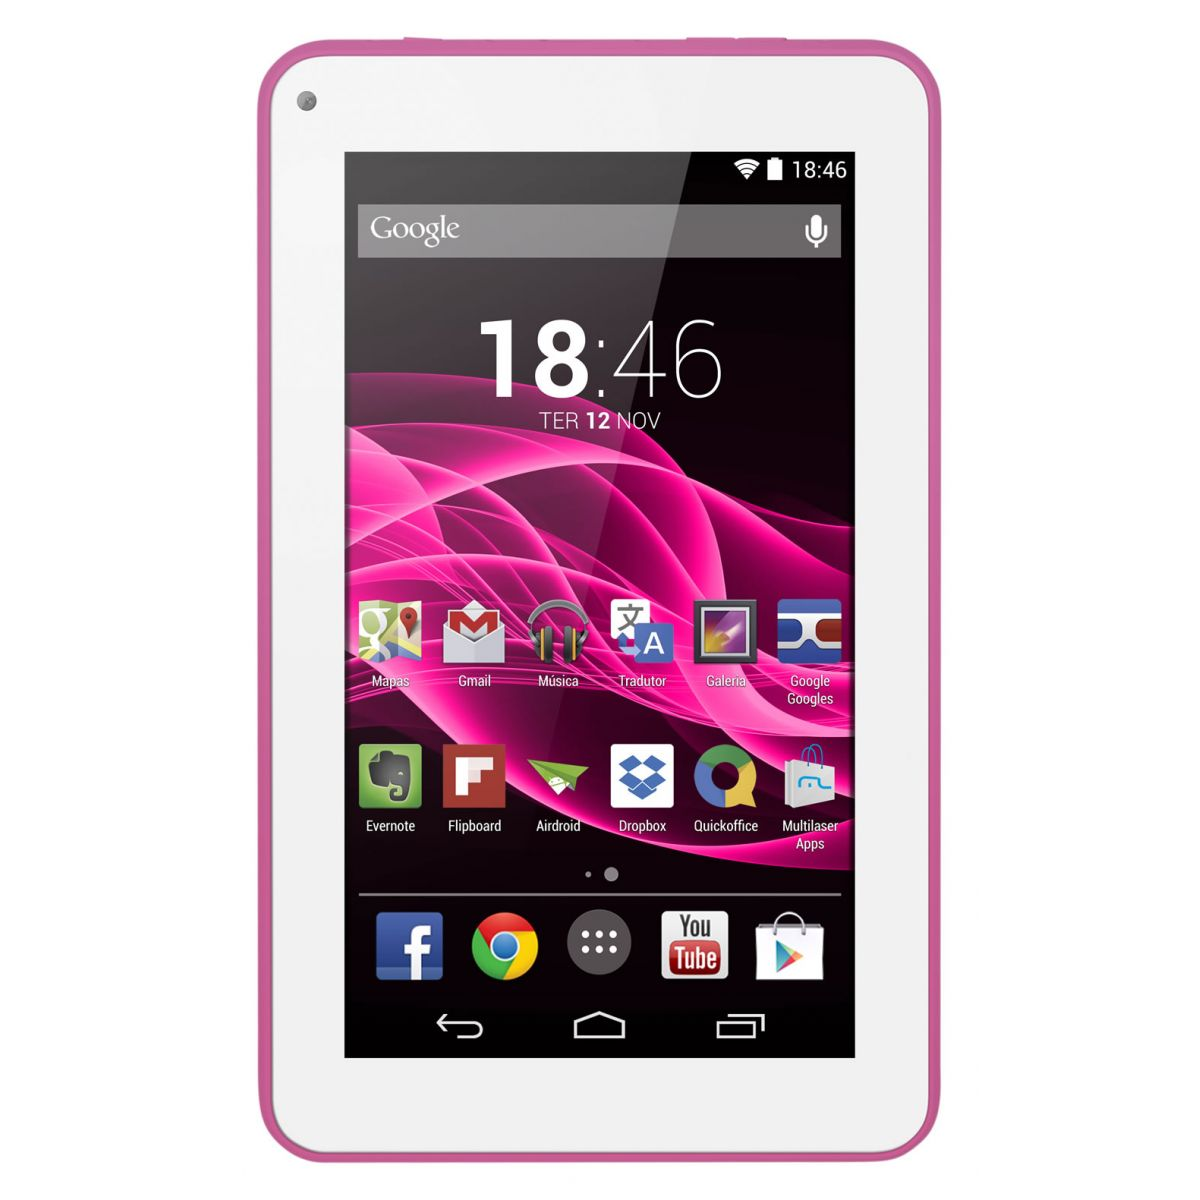 Tablet M7S Quad Core Android 4.4 Wi-Fi 7 8GB Rosa NB186 Multilaser